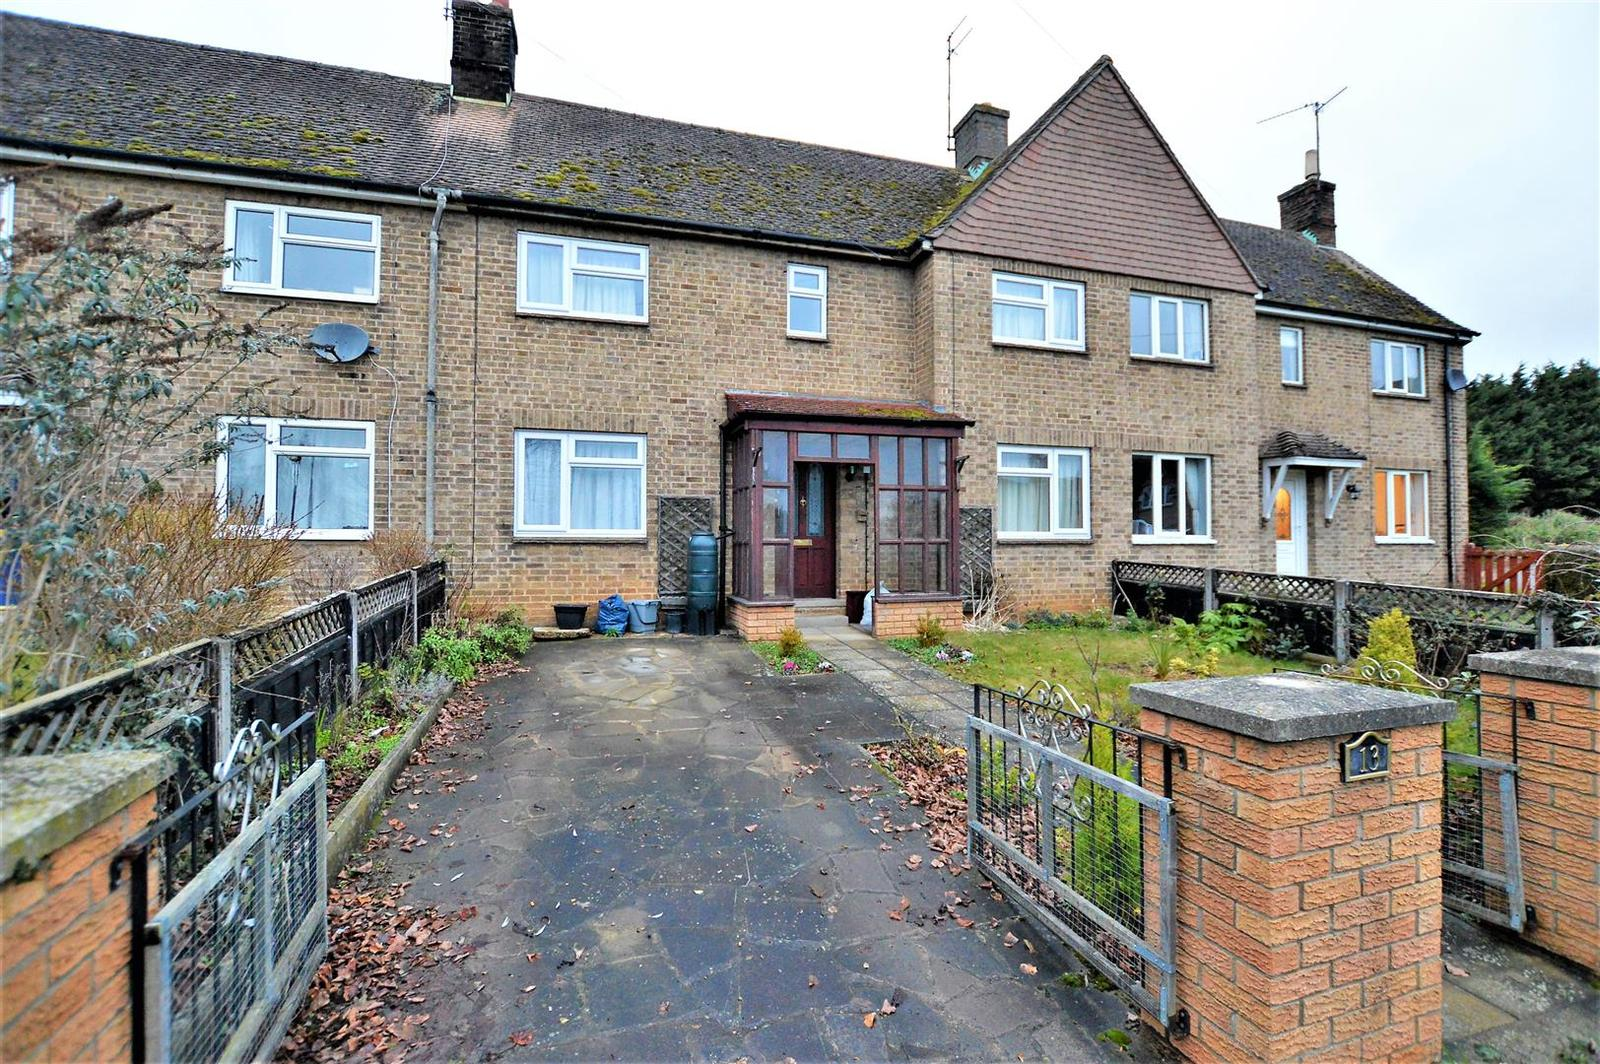 3 Bedrooms Terraced House for sale in Nene Close, Wansford, Peterborough